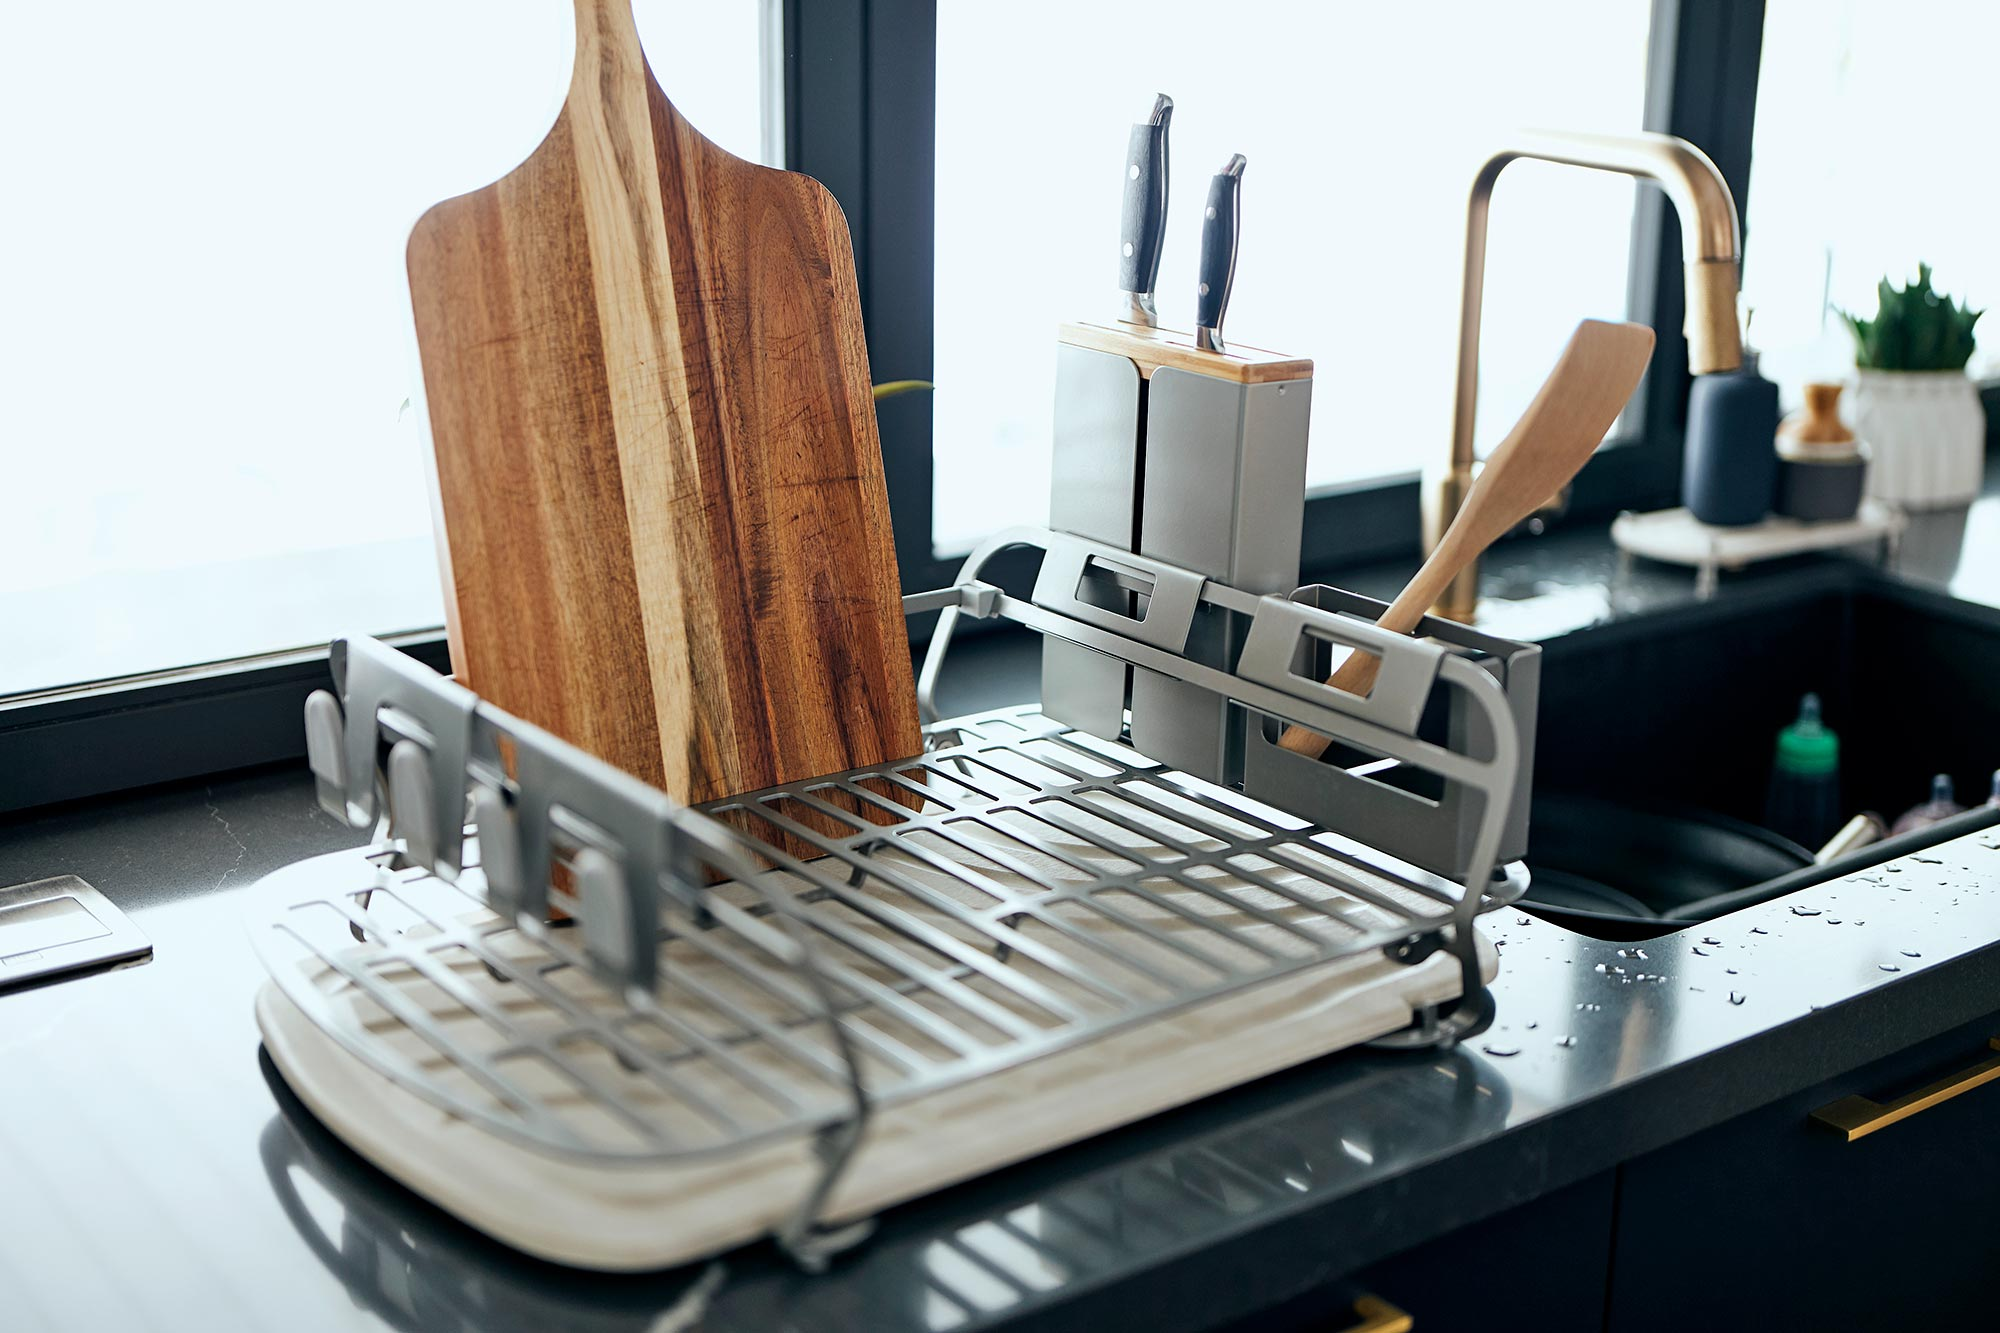 Reinventing the Dish Rack: An Interview with the Dorai Research & Design Team